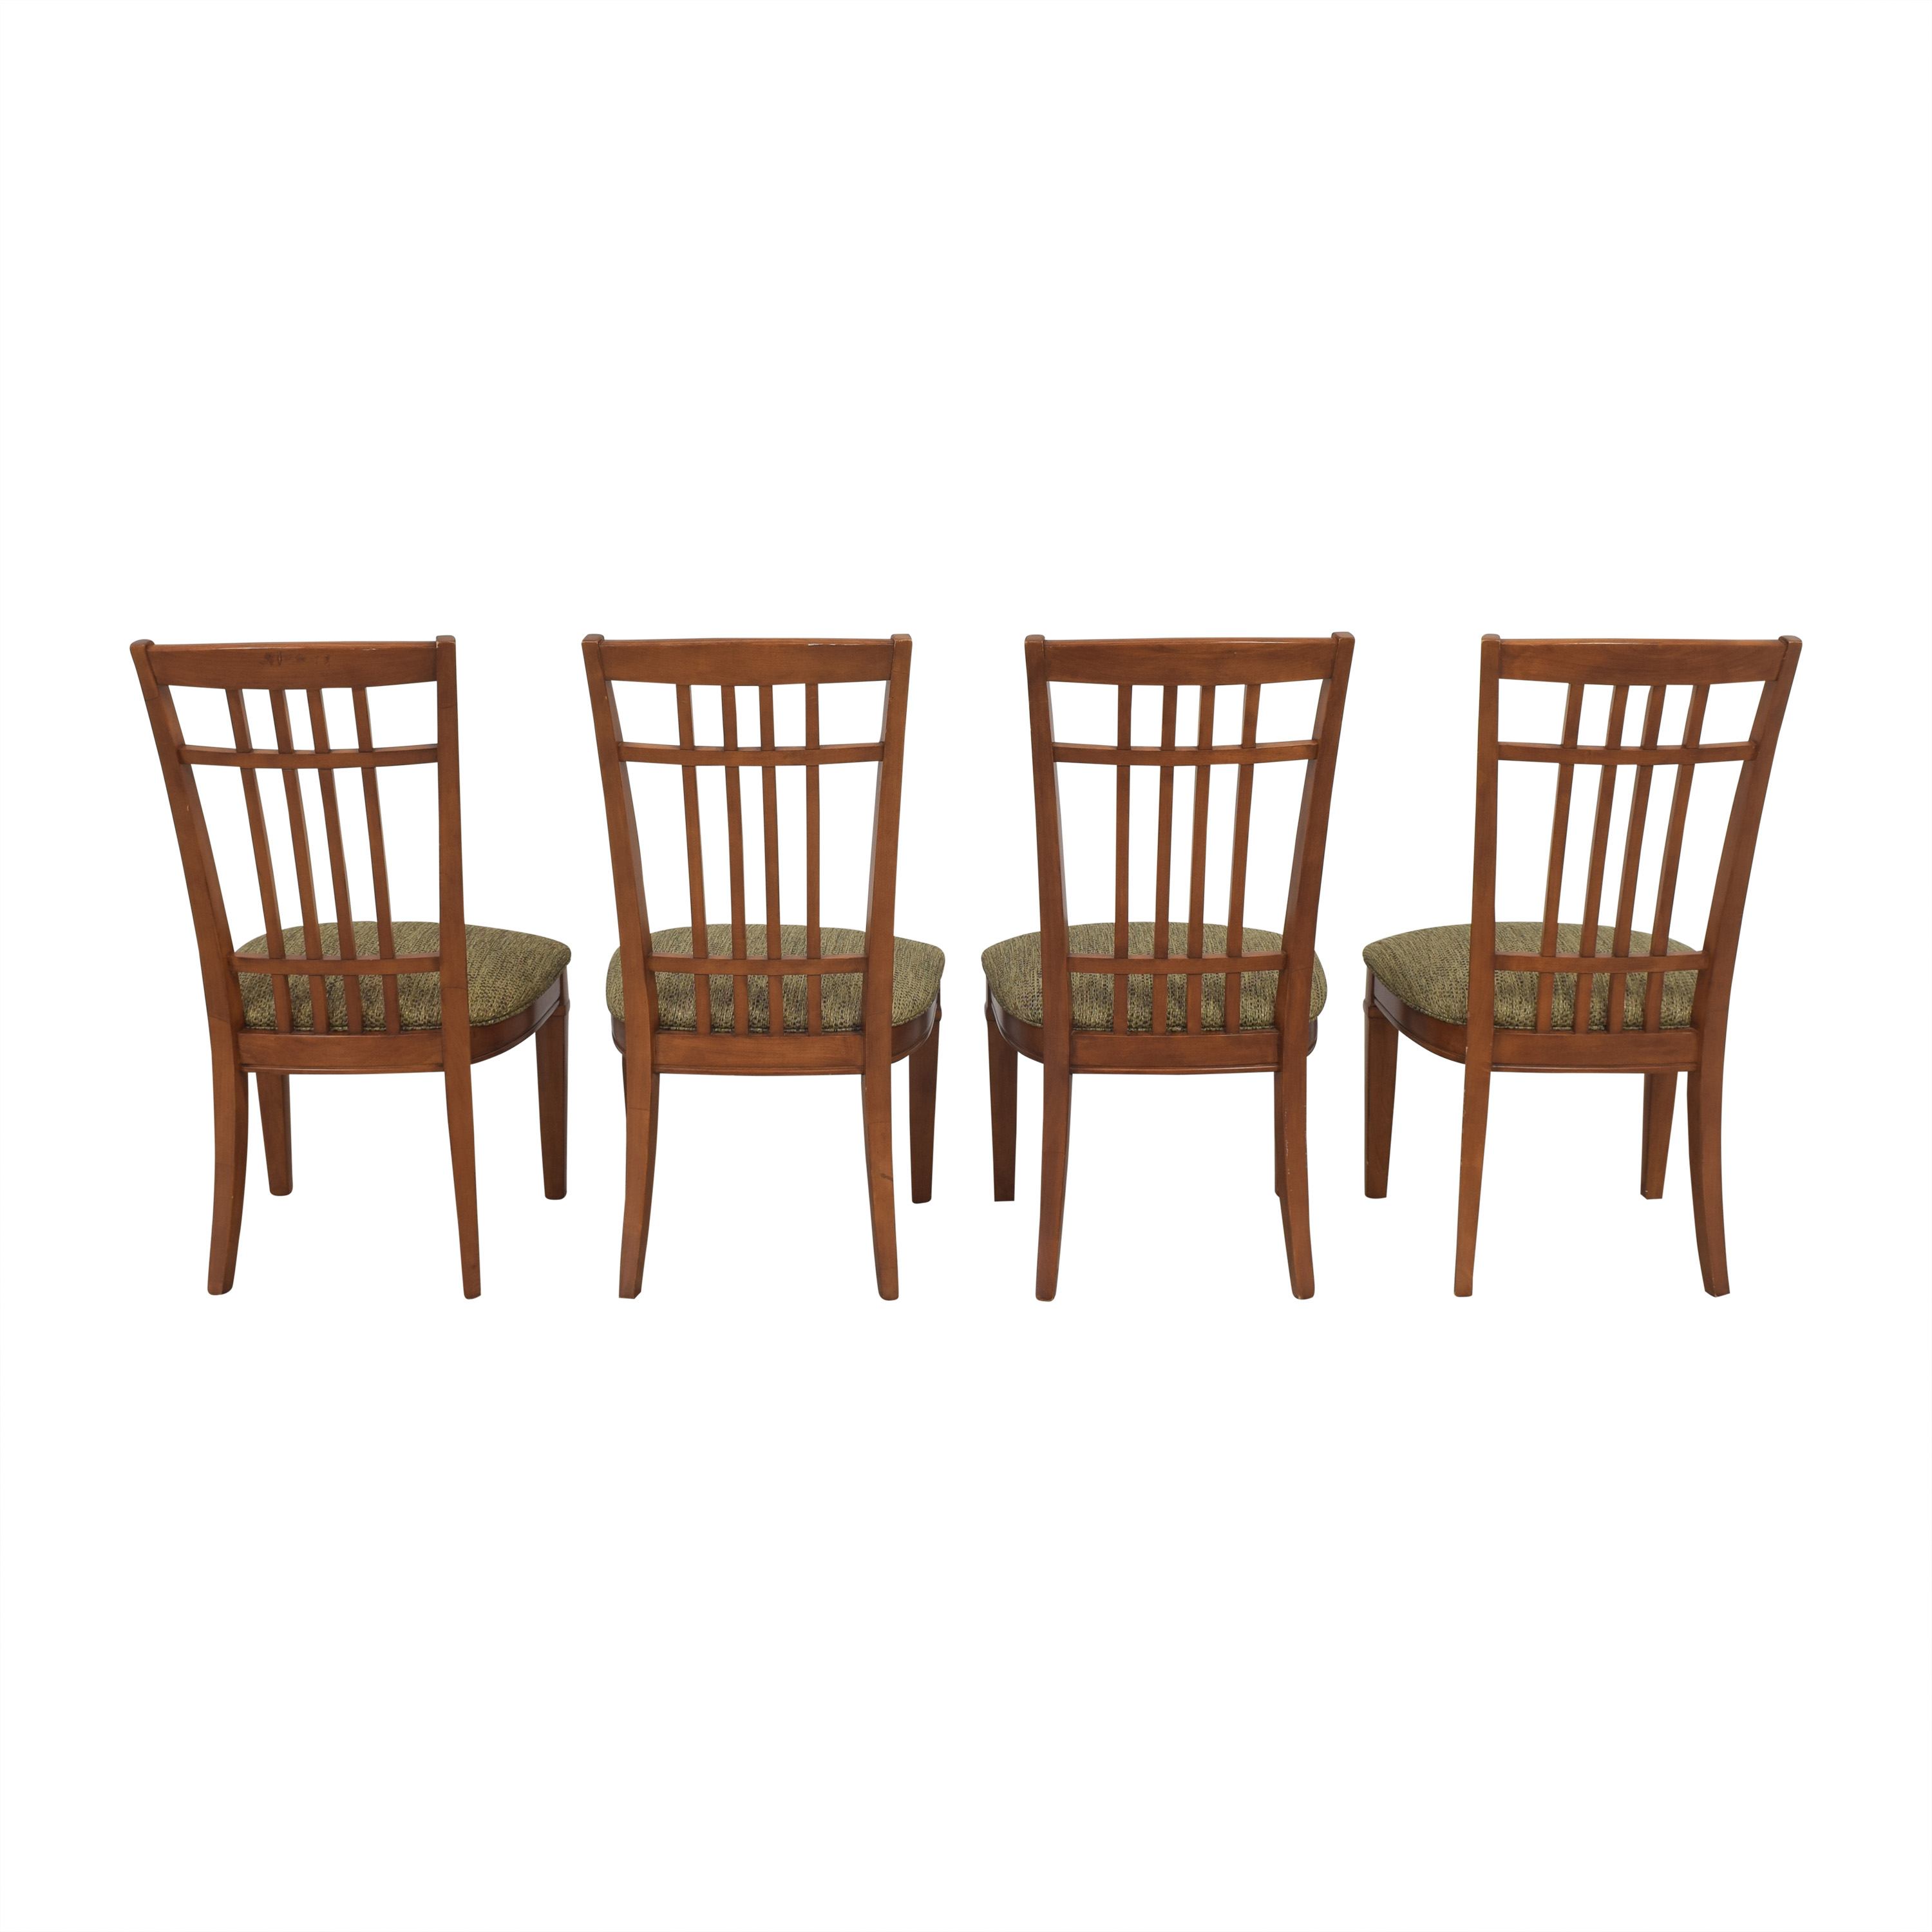 Thomasville Thomasville Bridges 2.0 Side Dining Chairs Brown